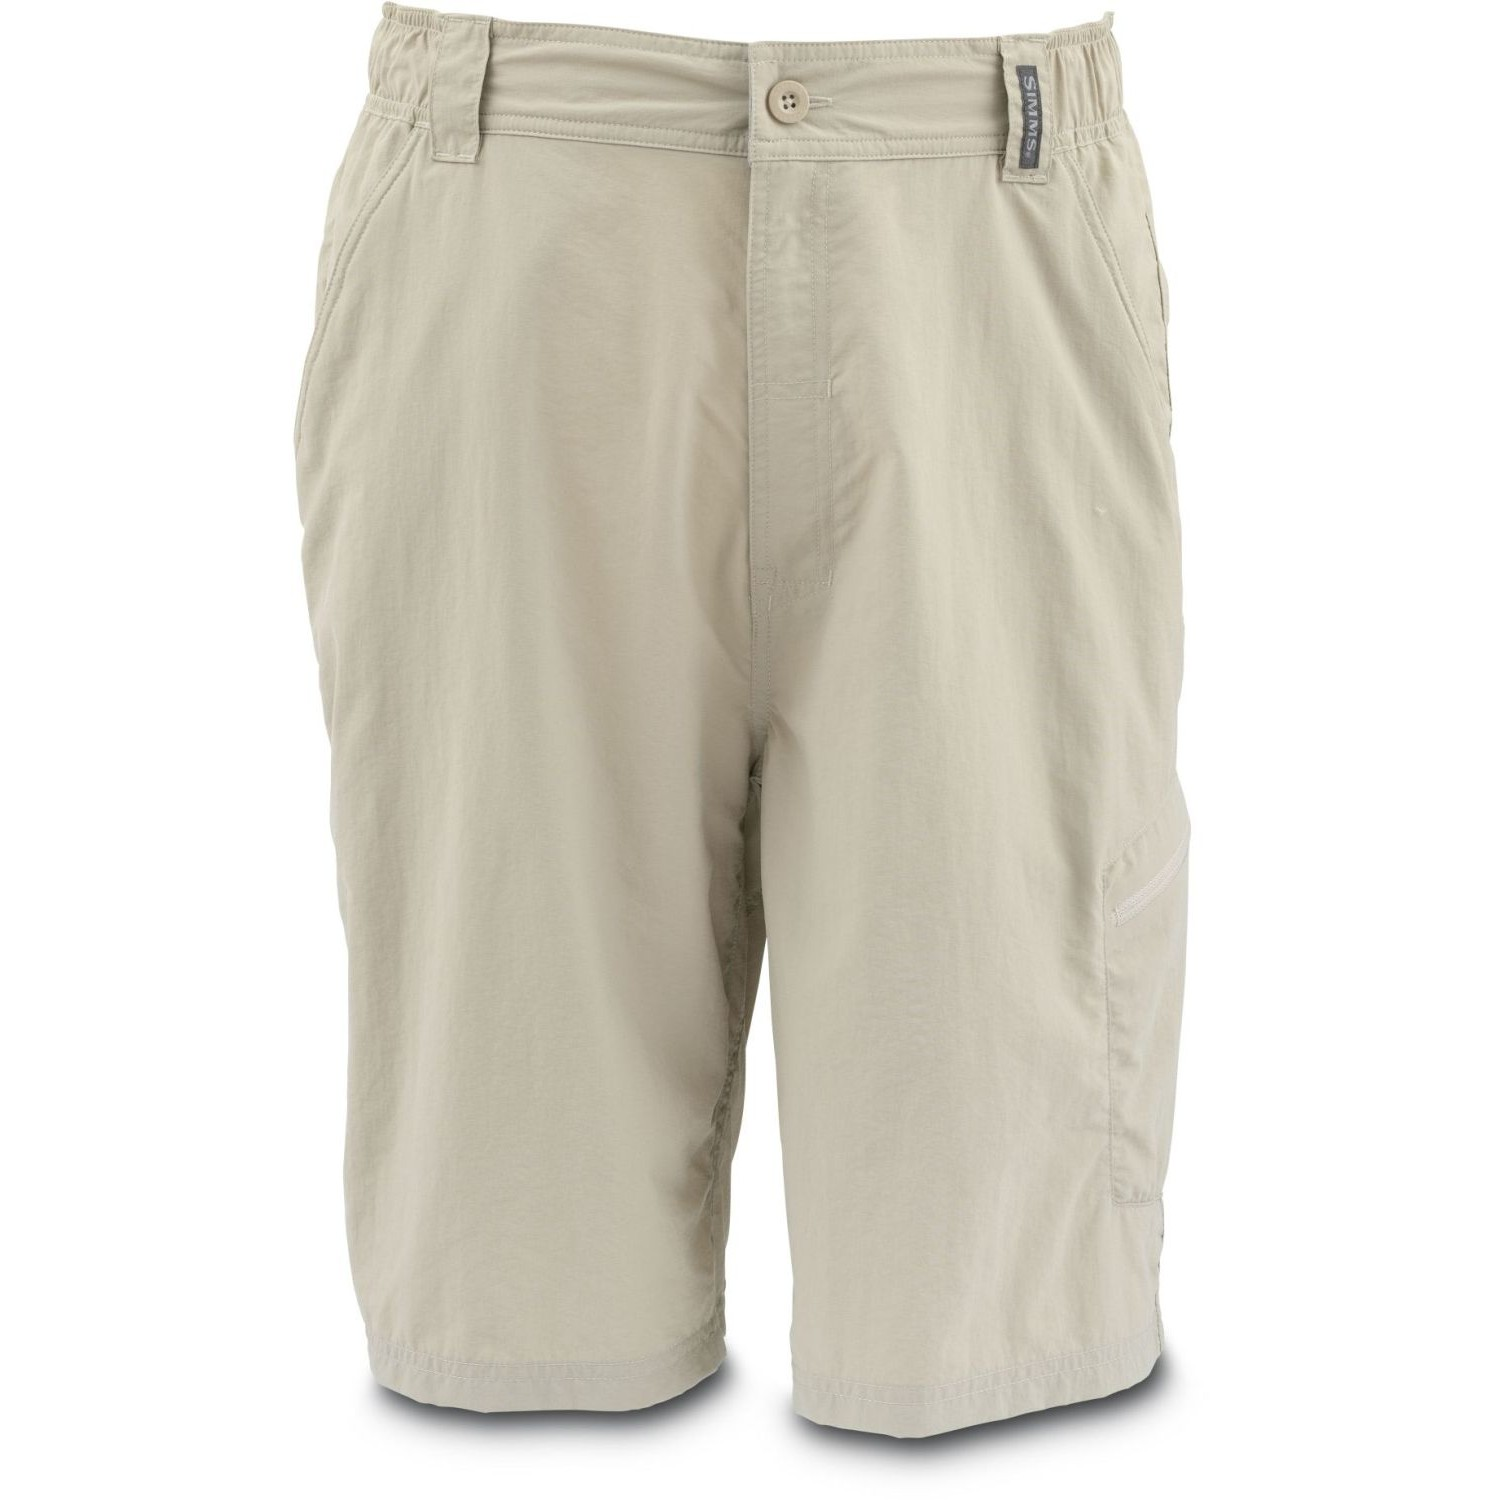 Simms Superlight Short Cork